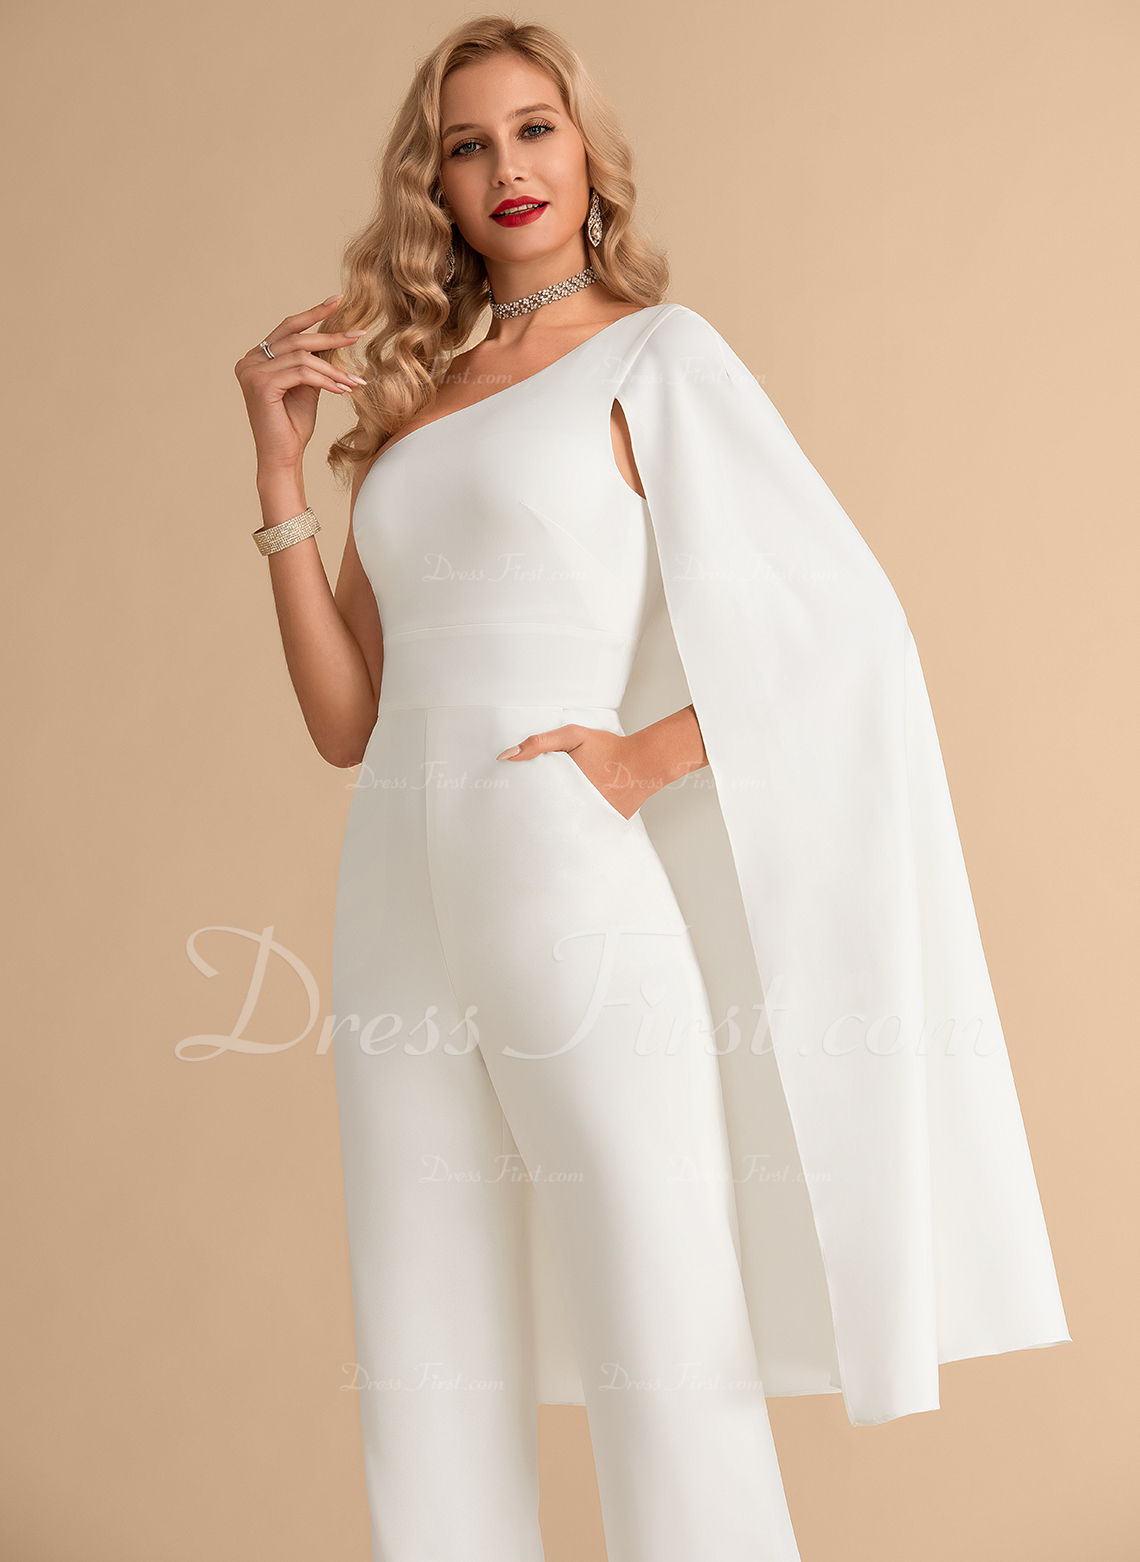 A-Line One-Shoulder Floor-Length Stretch Crepe Wedding Dress With Pockets